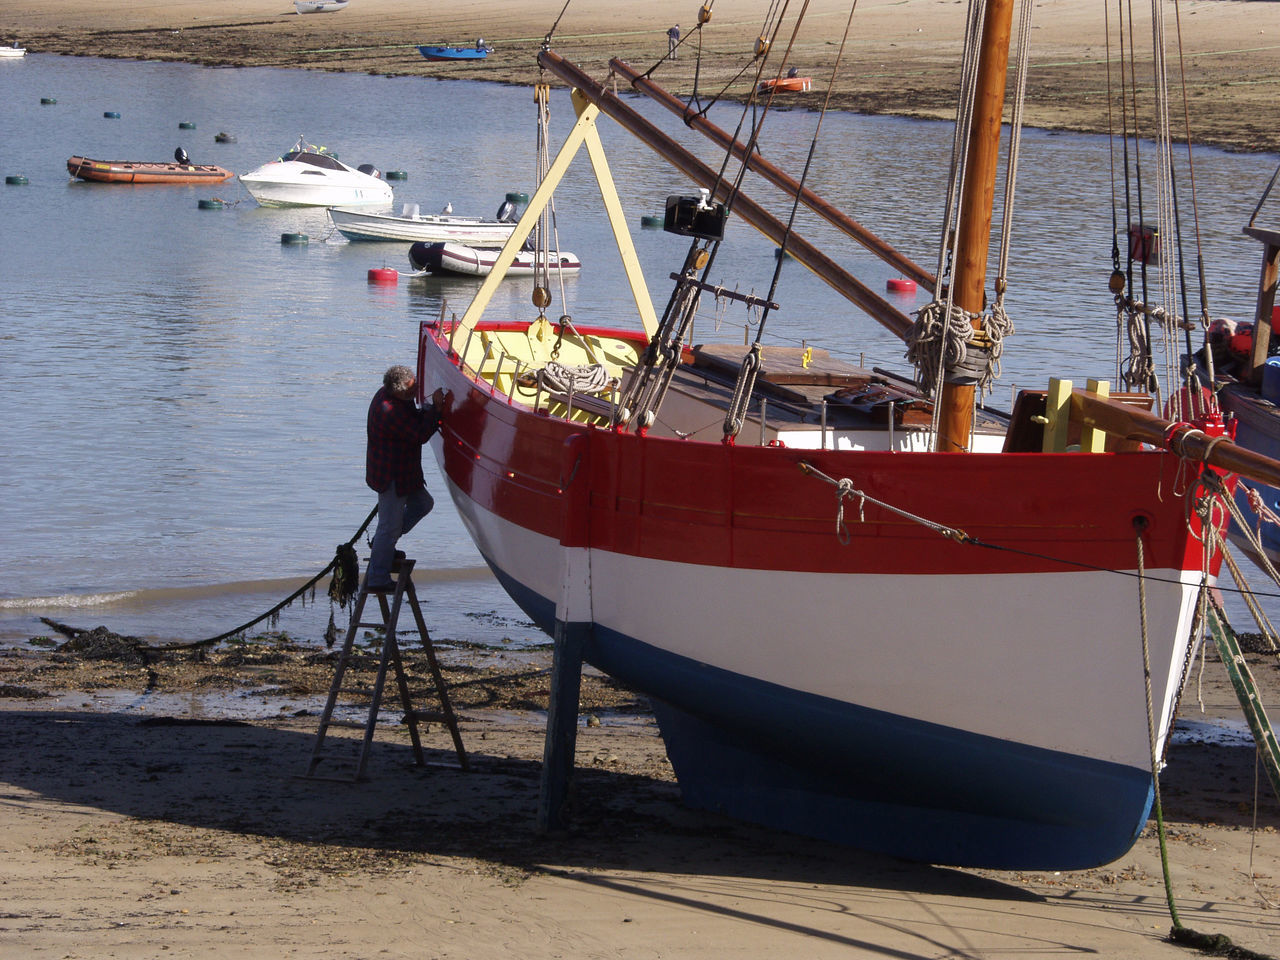 nautical vessel, transportation, mode of transport, sea, water, boat, full length, men, real people, day, nature, one person, moored, outdoors, occupation, standing, working, beauty in nature, beach, one man only, sky, people